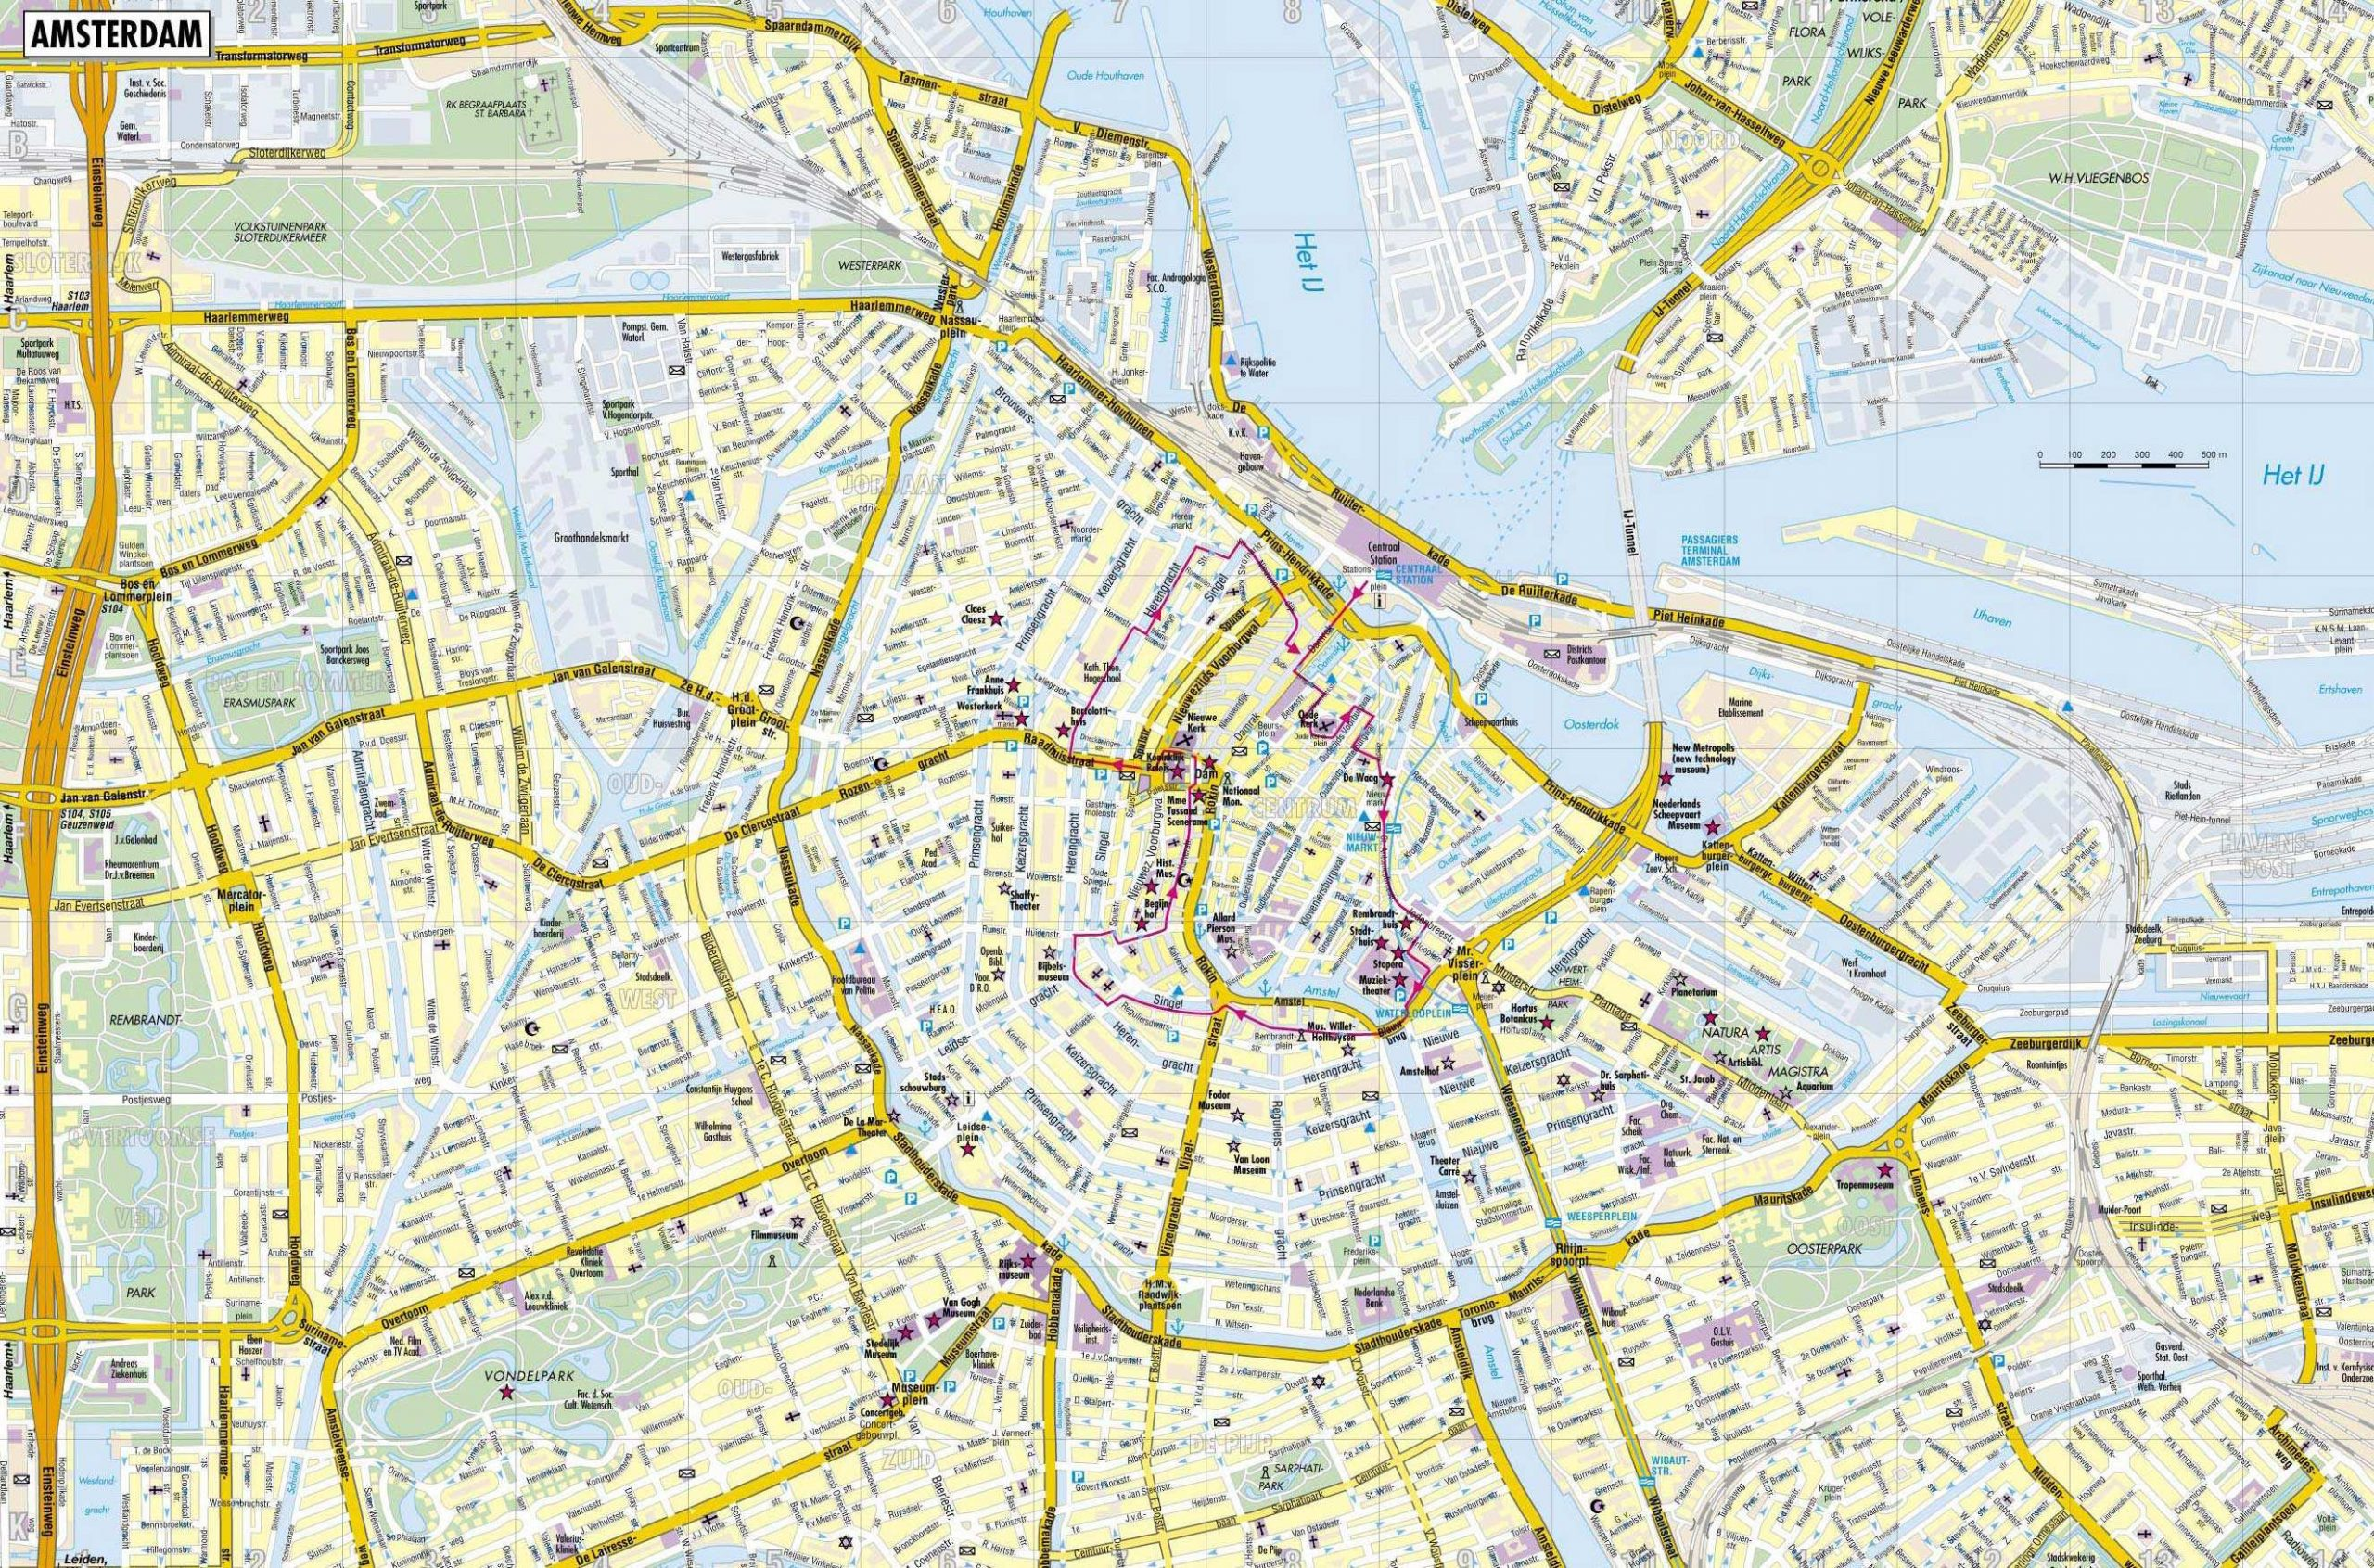 Large Amsterdam Maps For Free Download And Print   High